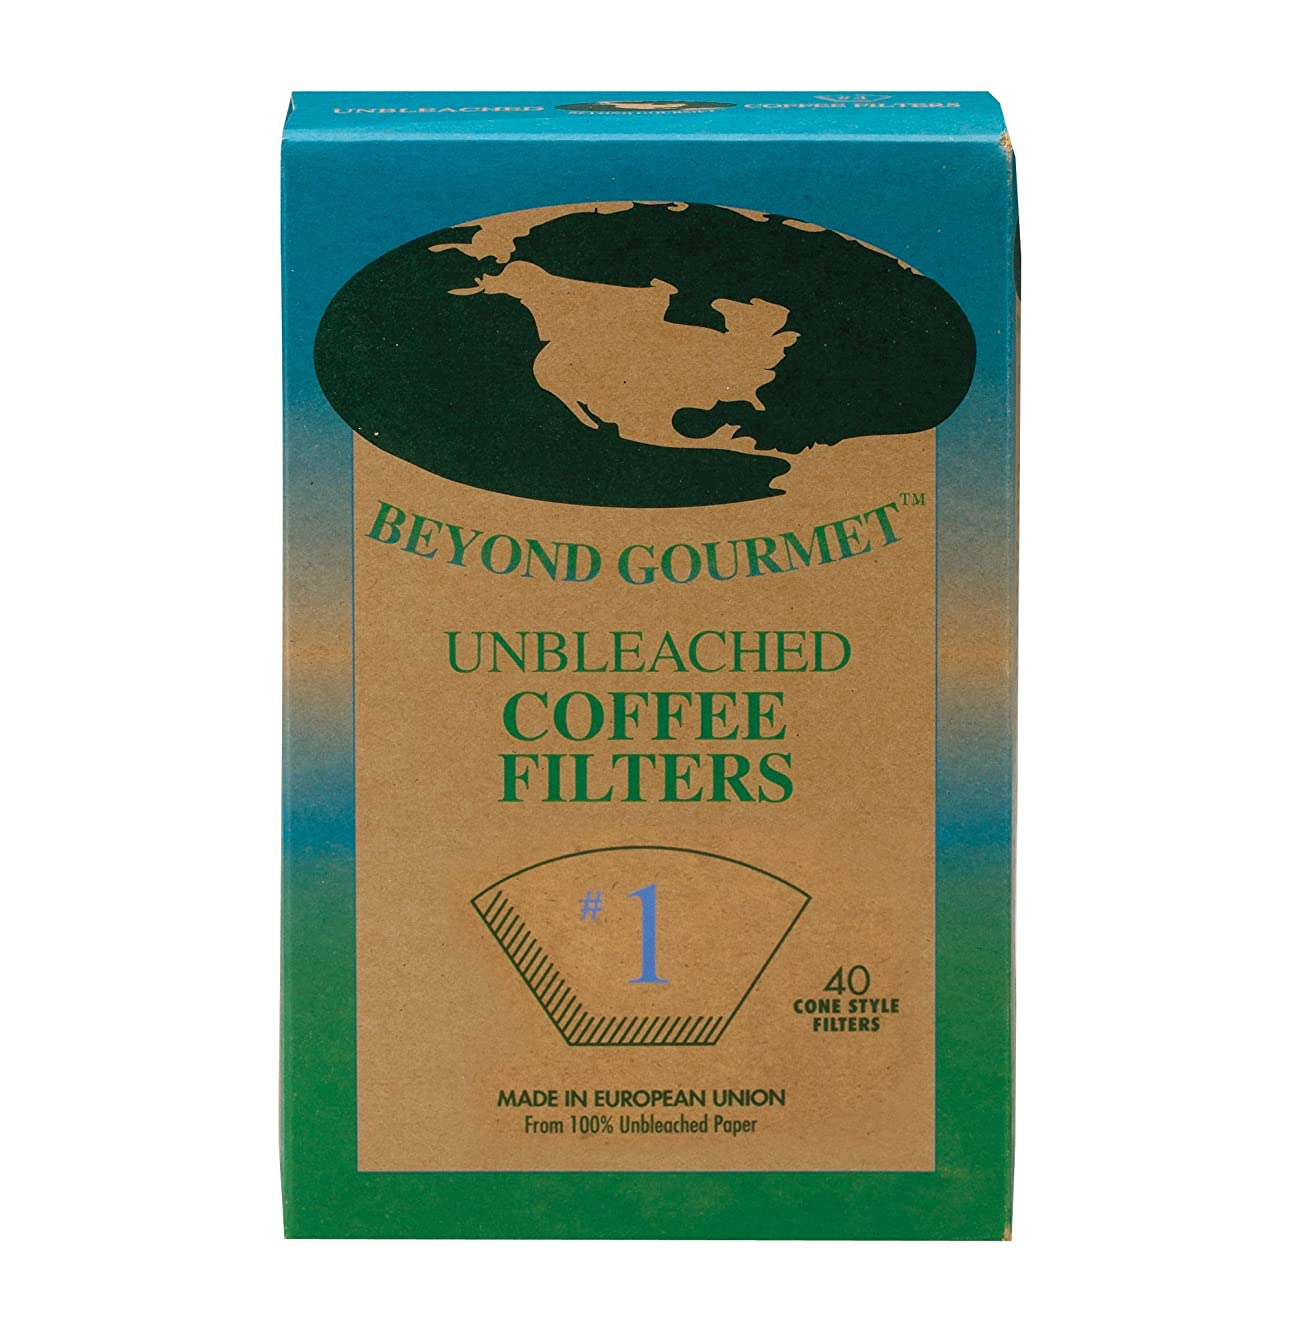 Beyond Gourmet Unbleached Coffee Filter, Size Number-1, Unbleached Paper, Made in Sweden, Brews 1 to 2 Cups, Box of 40 lwbnstjojbaot59